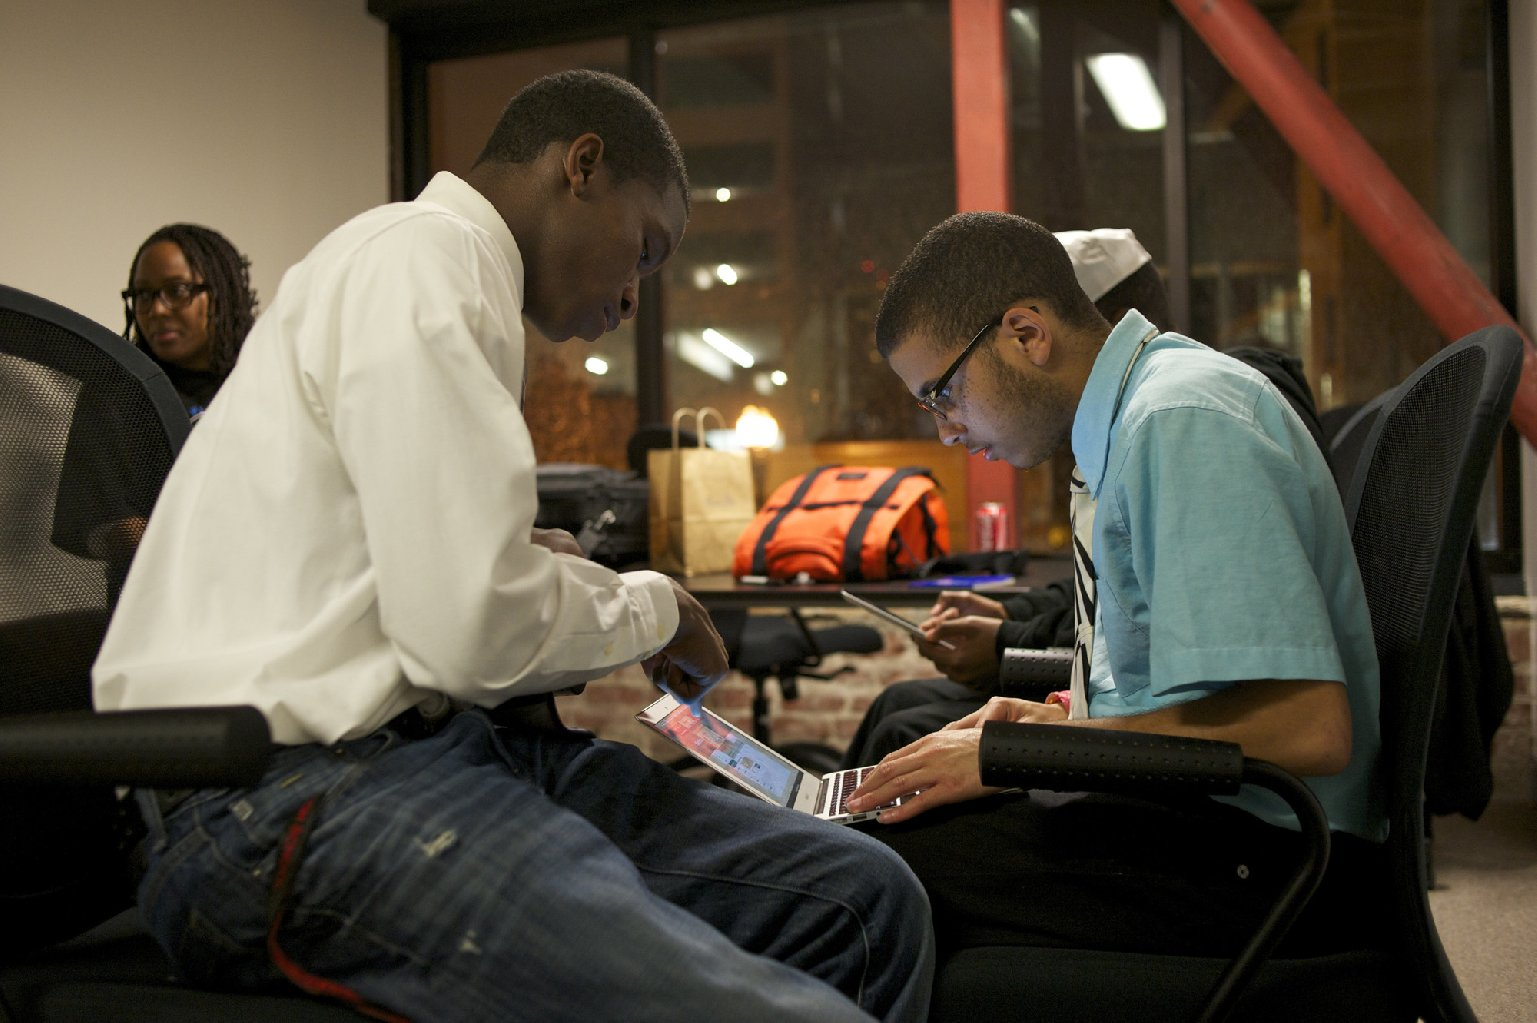 Bryon Muccular and Matthew Jones work at the Black Male Achievement hackathon in Oakland, Calif. (Jeremy Raff/KQED)